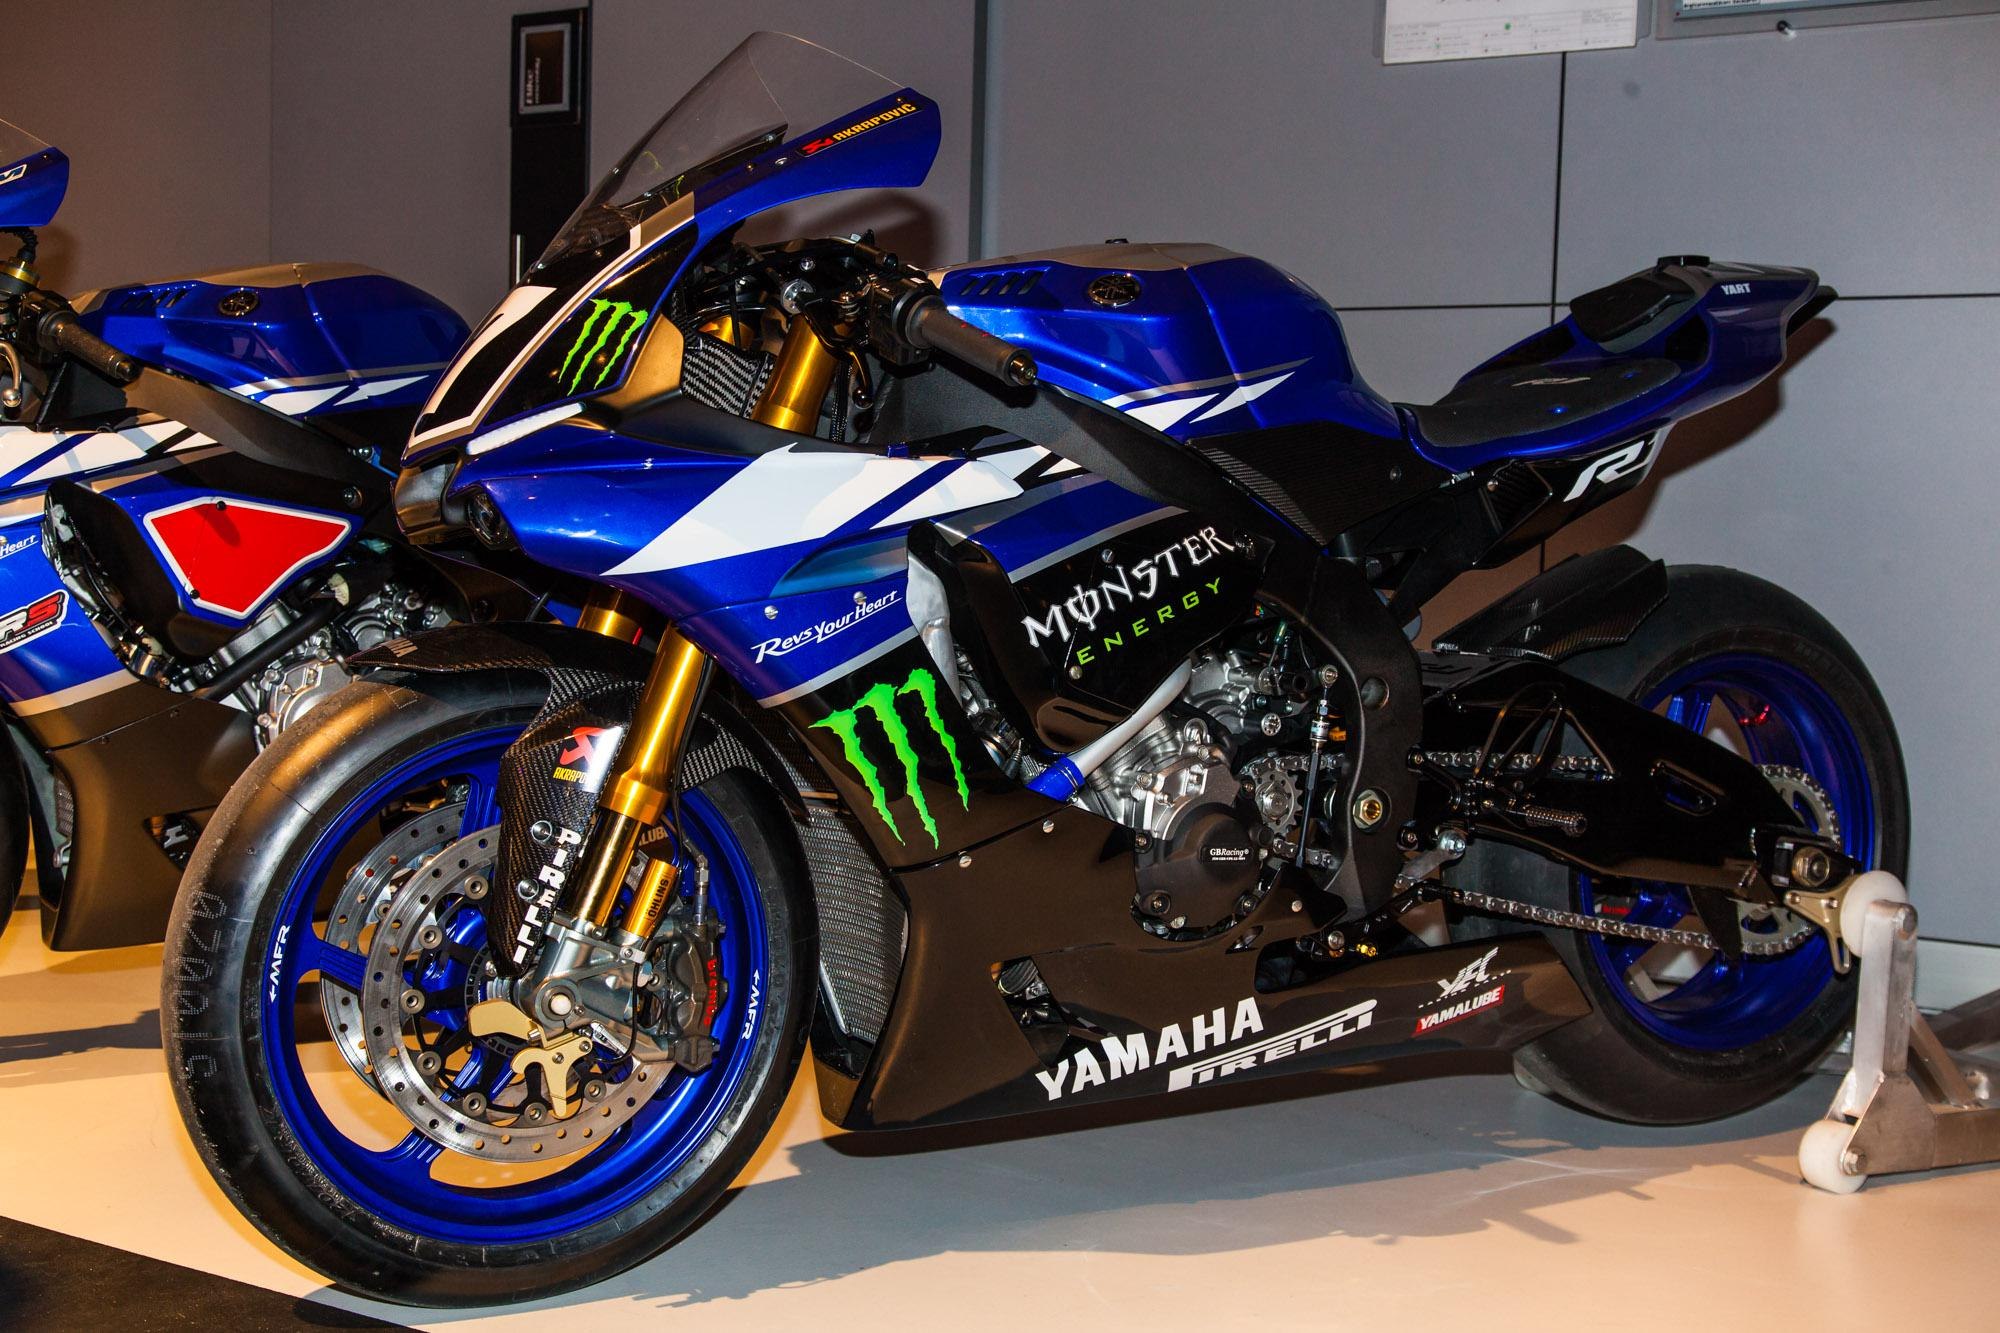 Yamaha R Valentino Rossi Edition For Sale